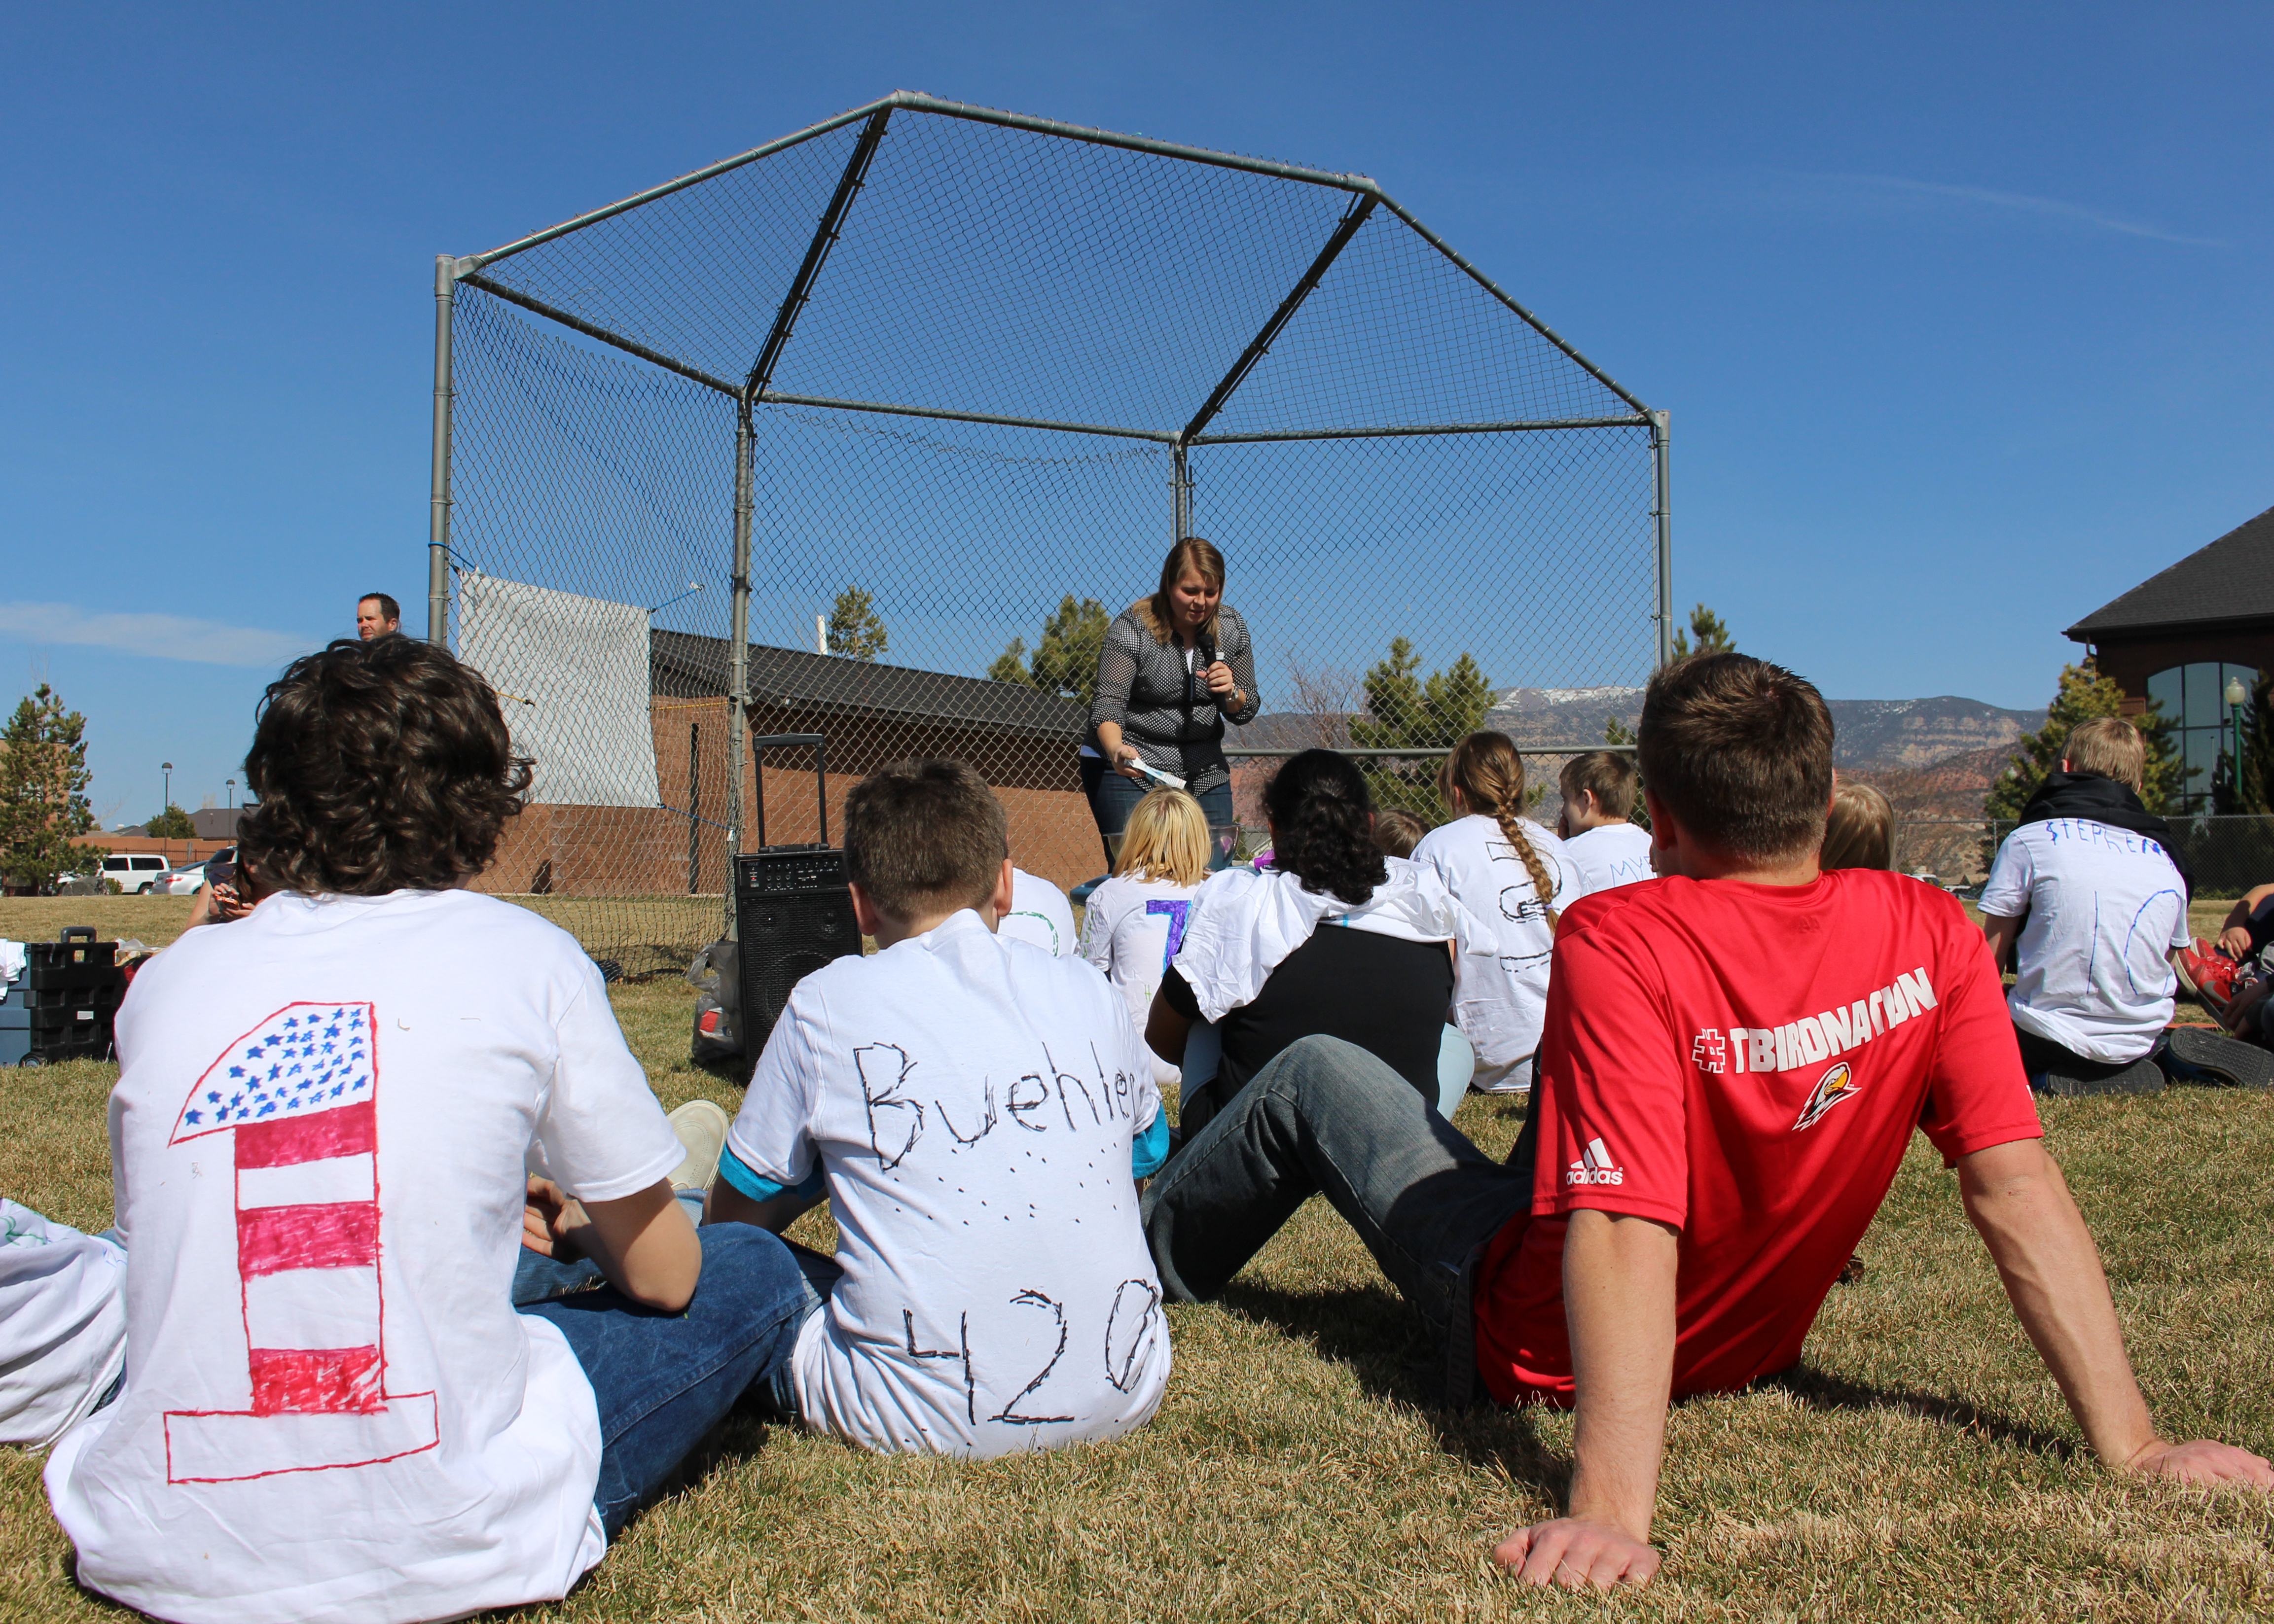 Cedar City Kids Take Action Against Tobacco On Kick Butts Day